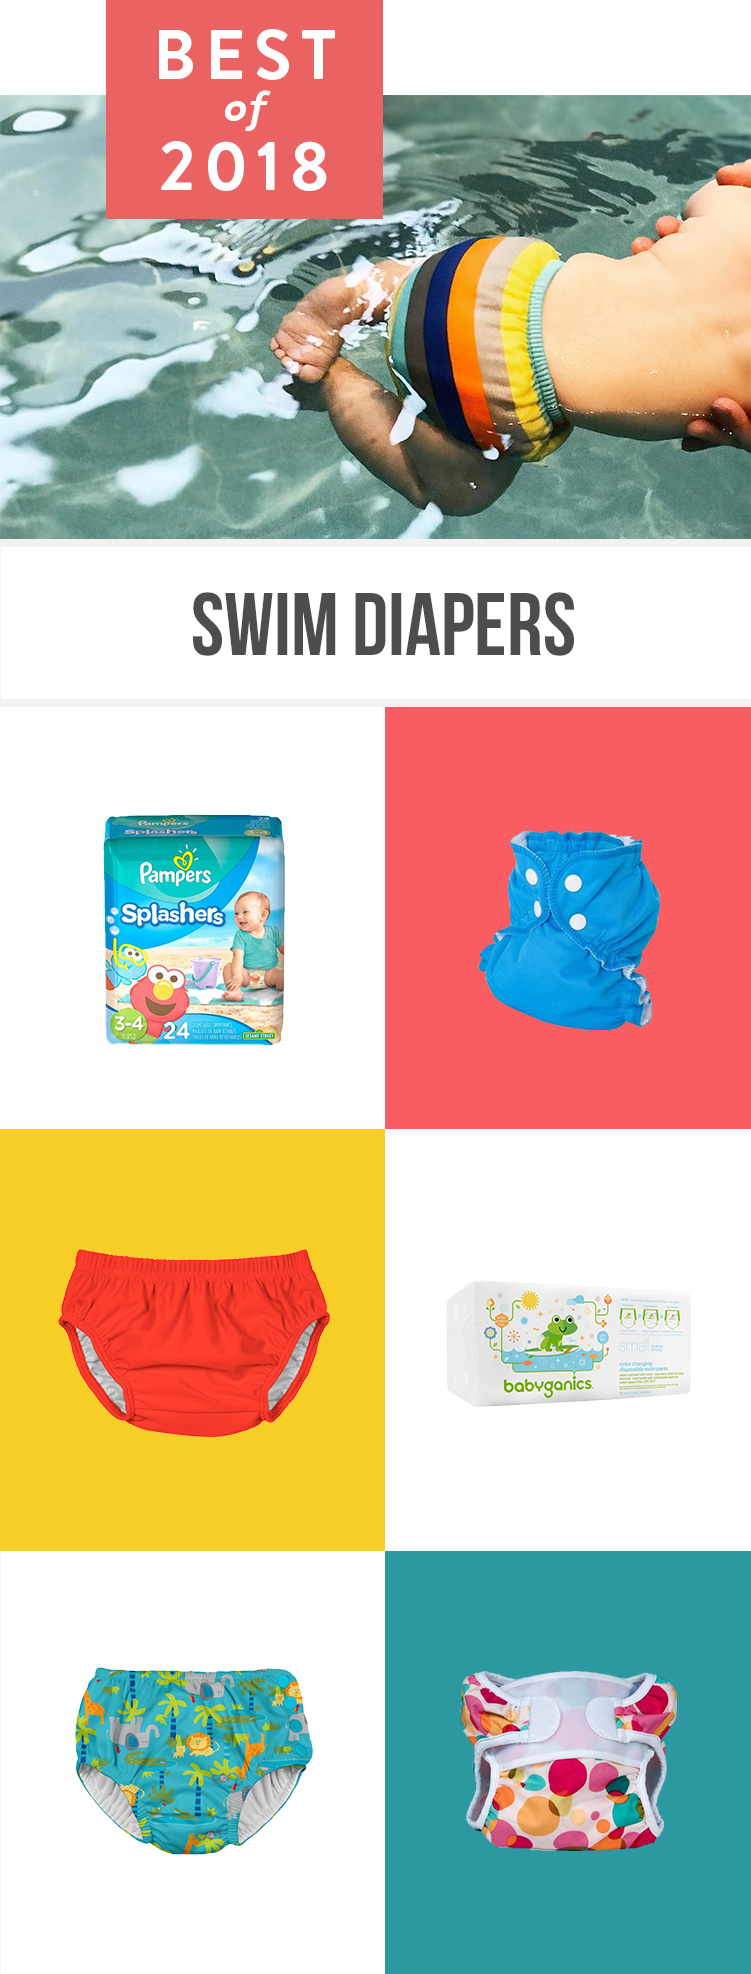 From disposable to reusable swim diapers, these are the best for babies/infants and kids according to thousands of parents.